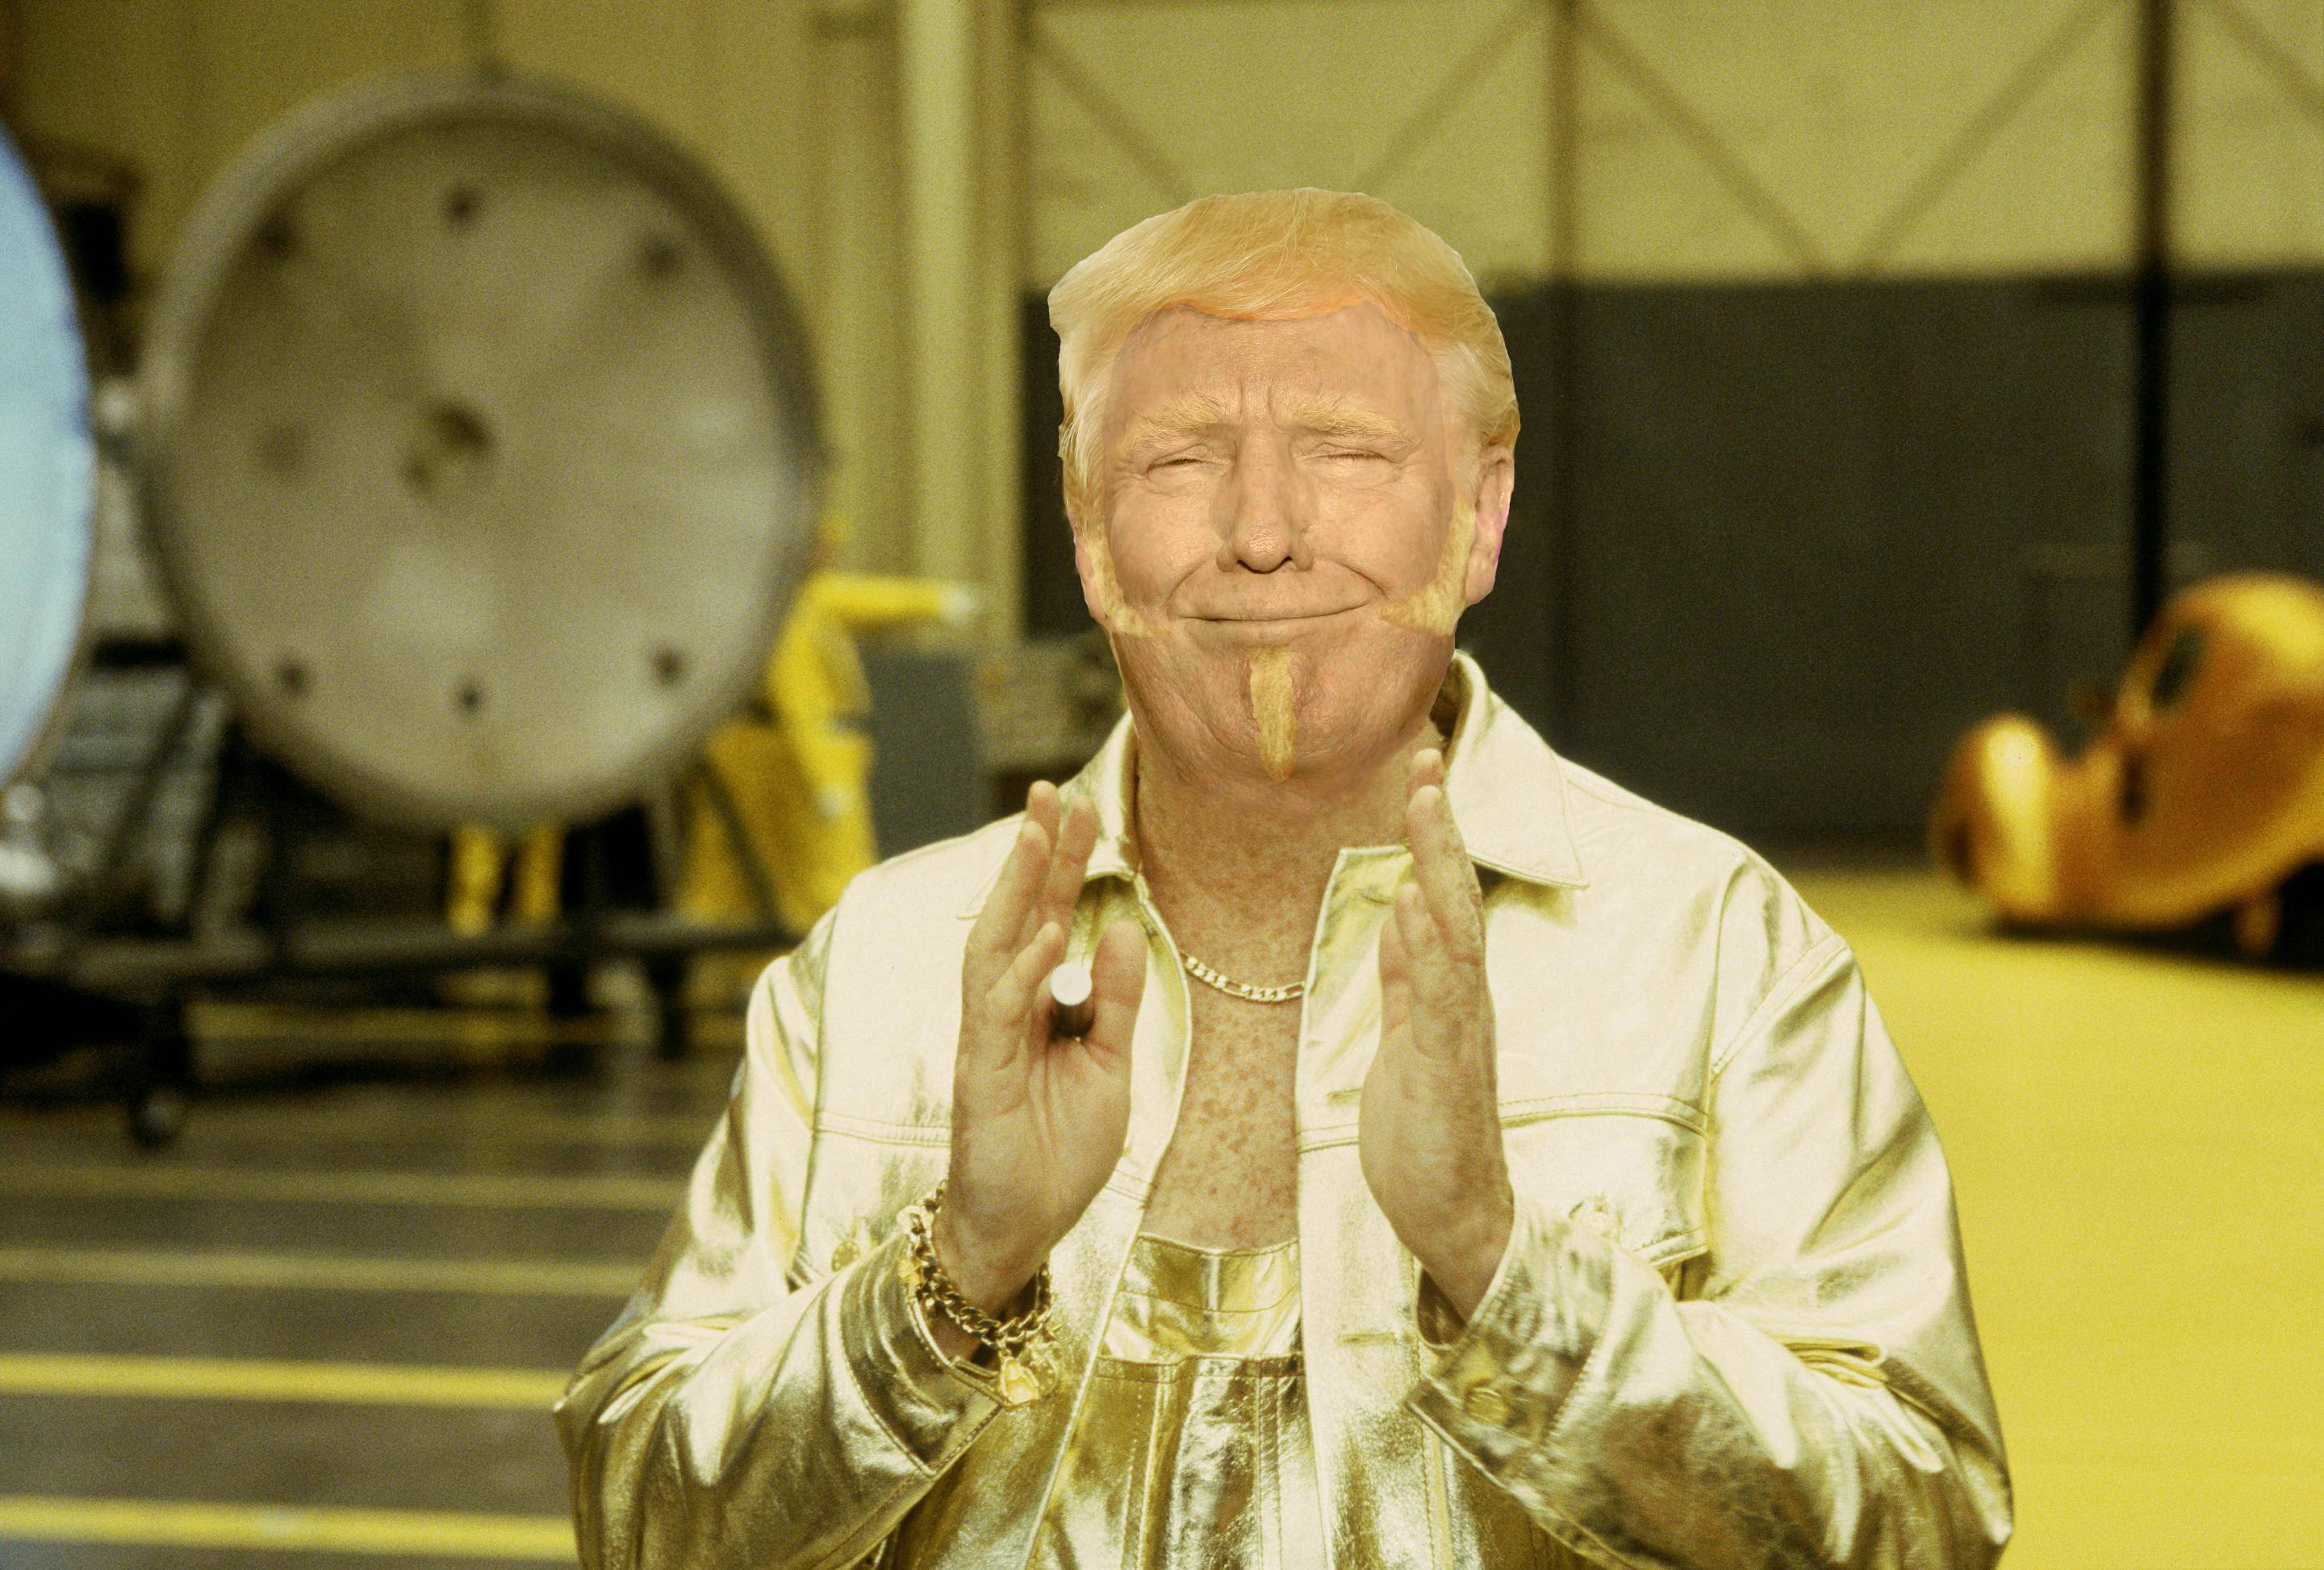 donald trump is evil supervillan goldmember, mashup